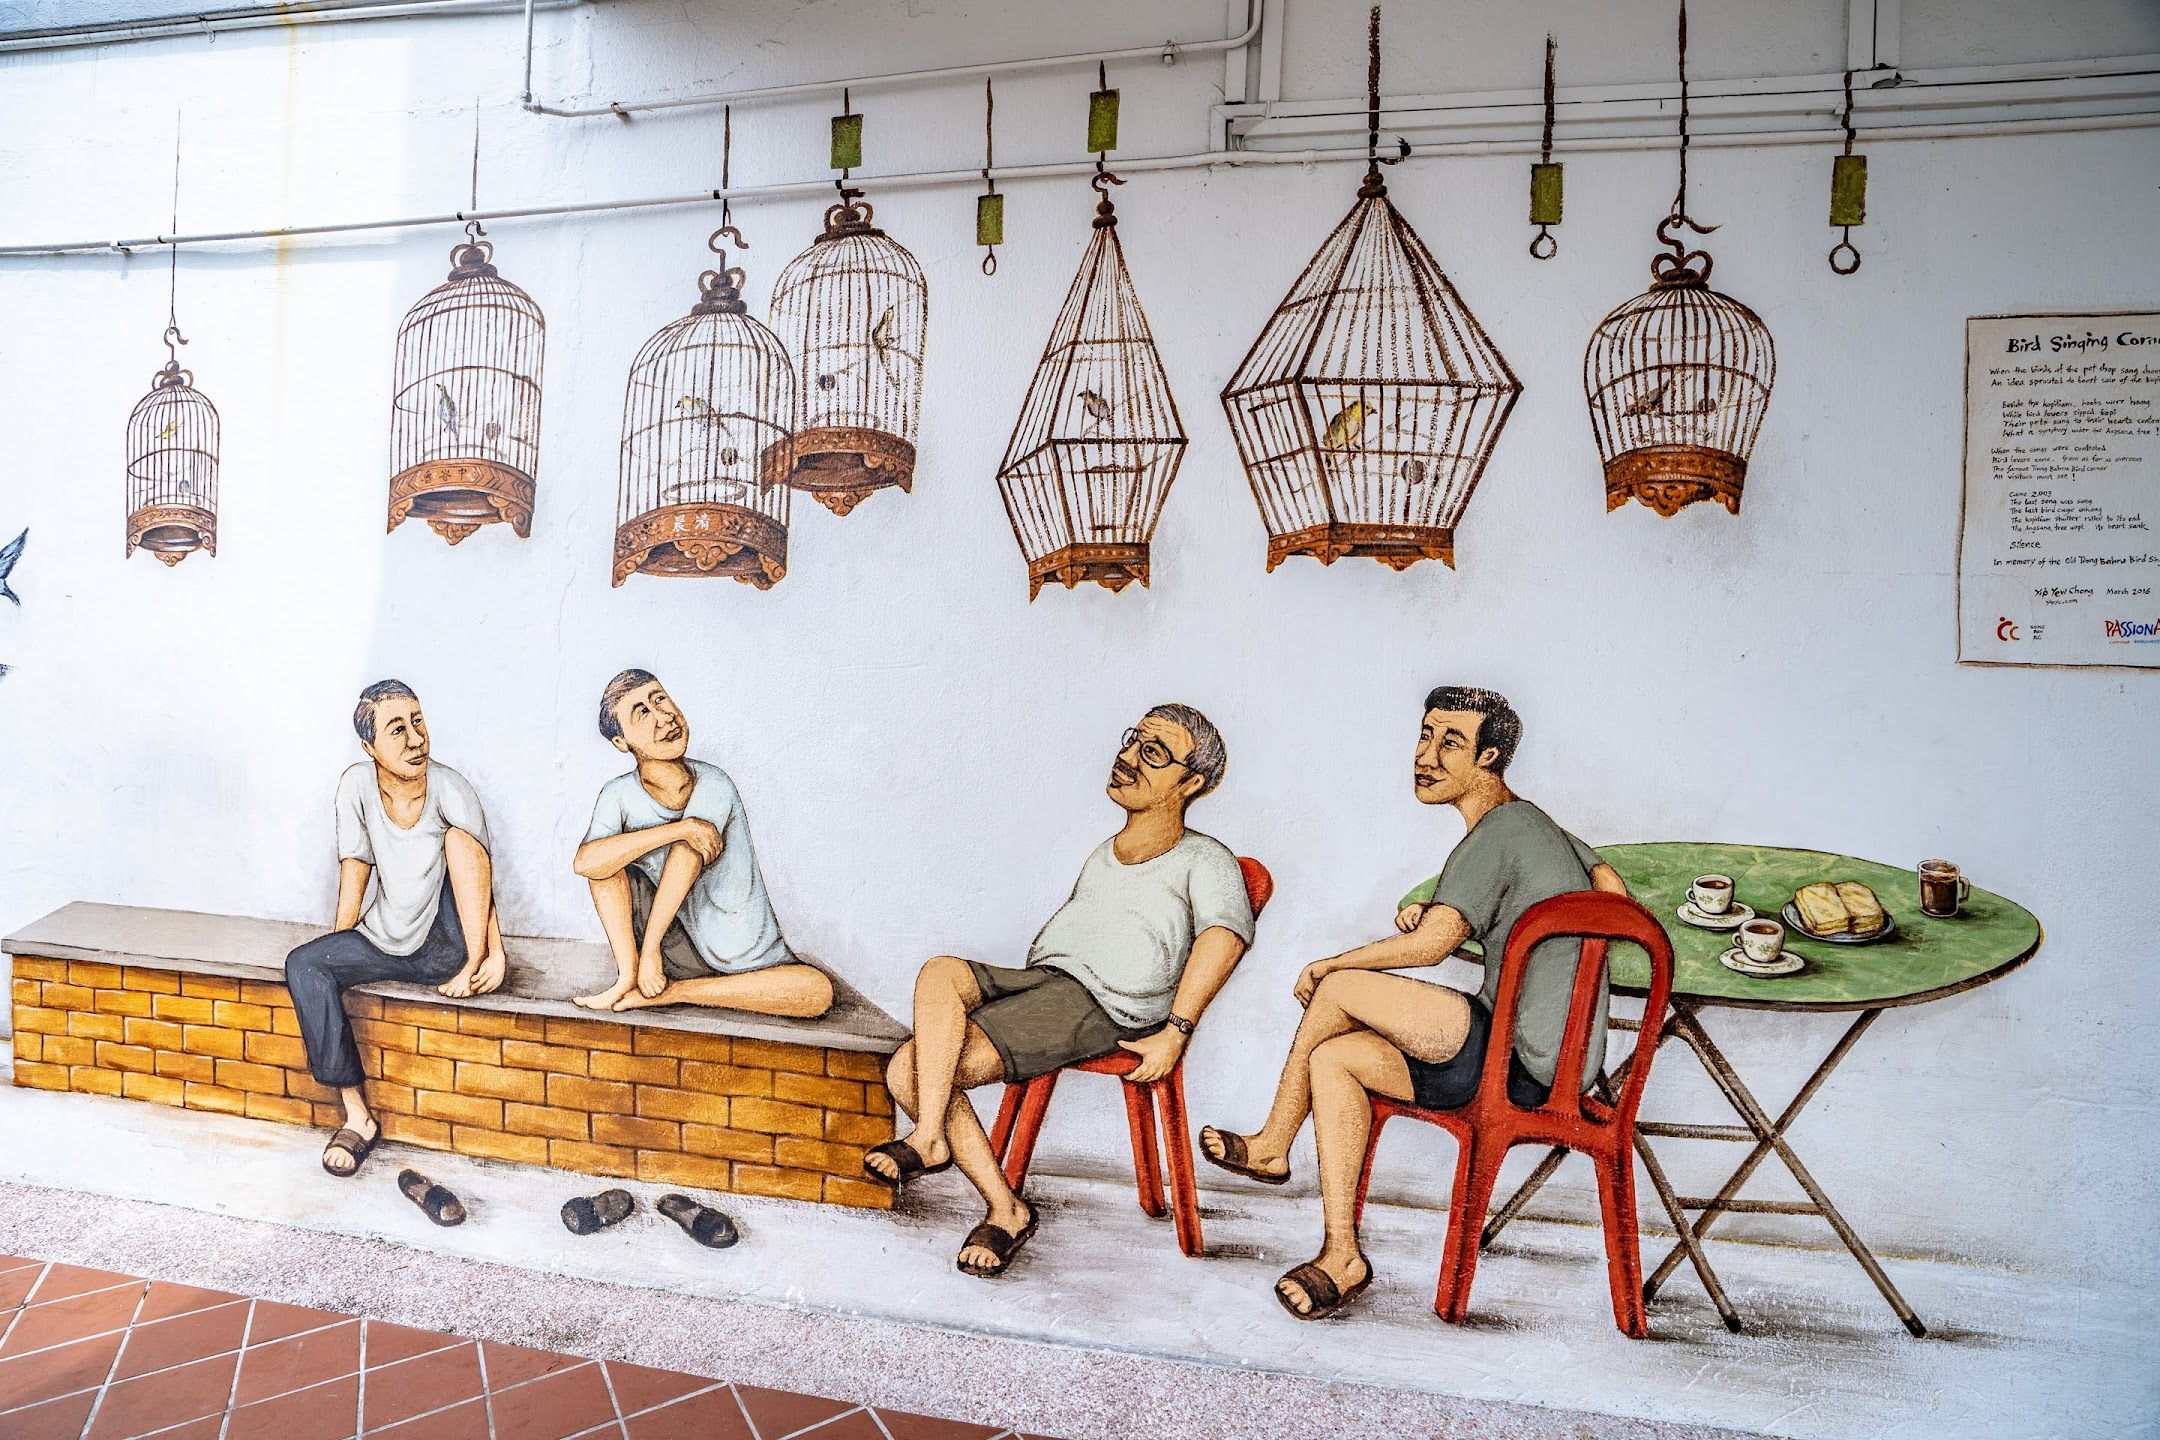 Singapore Tiong Bahru Wall art2